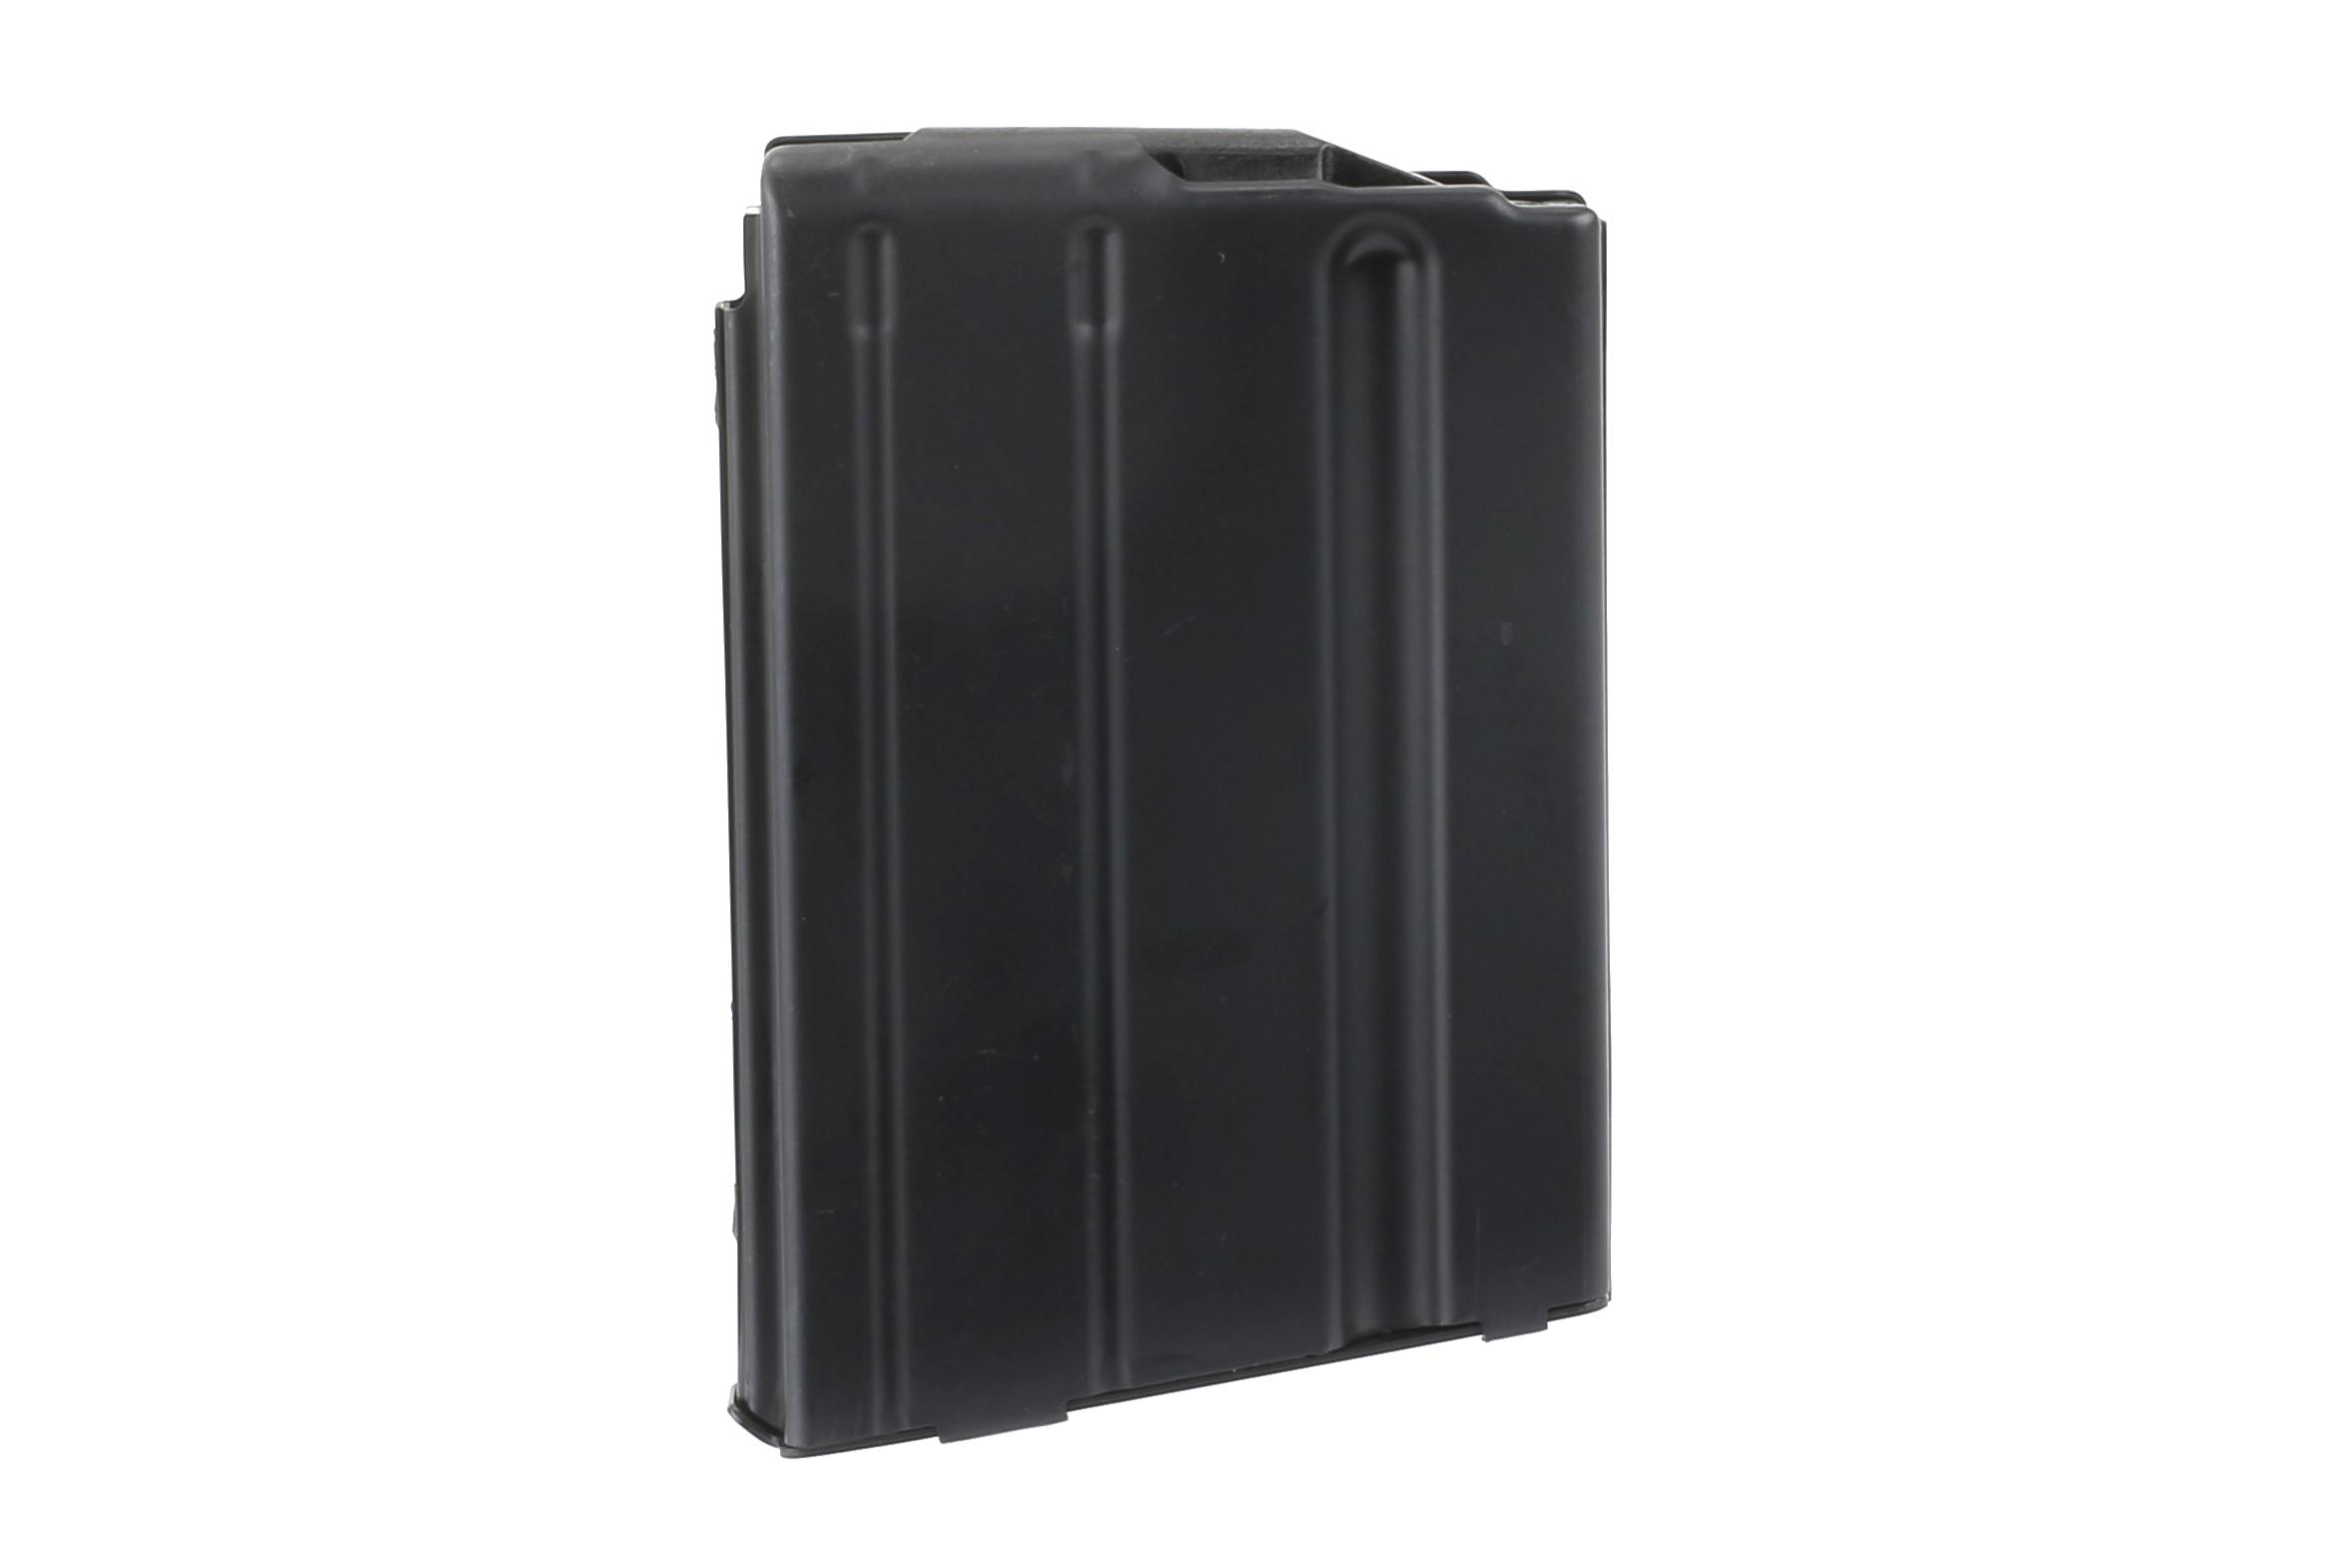 The 7 62x39 steel AR 15 Magazine from Ammunition storage components features a 10 Round capacity and chrome follower spring